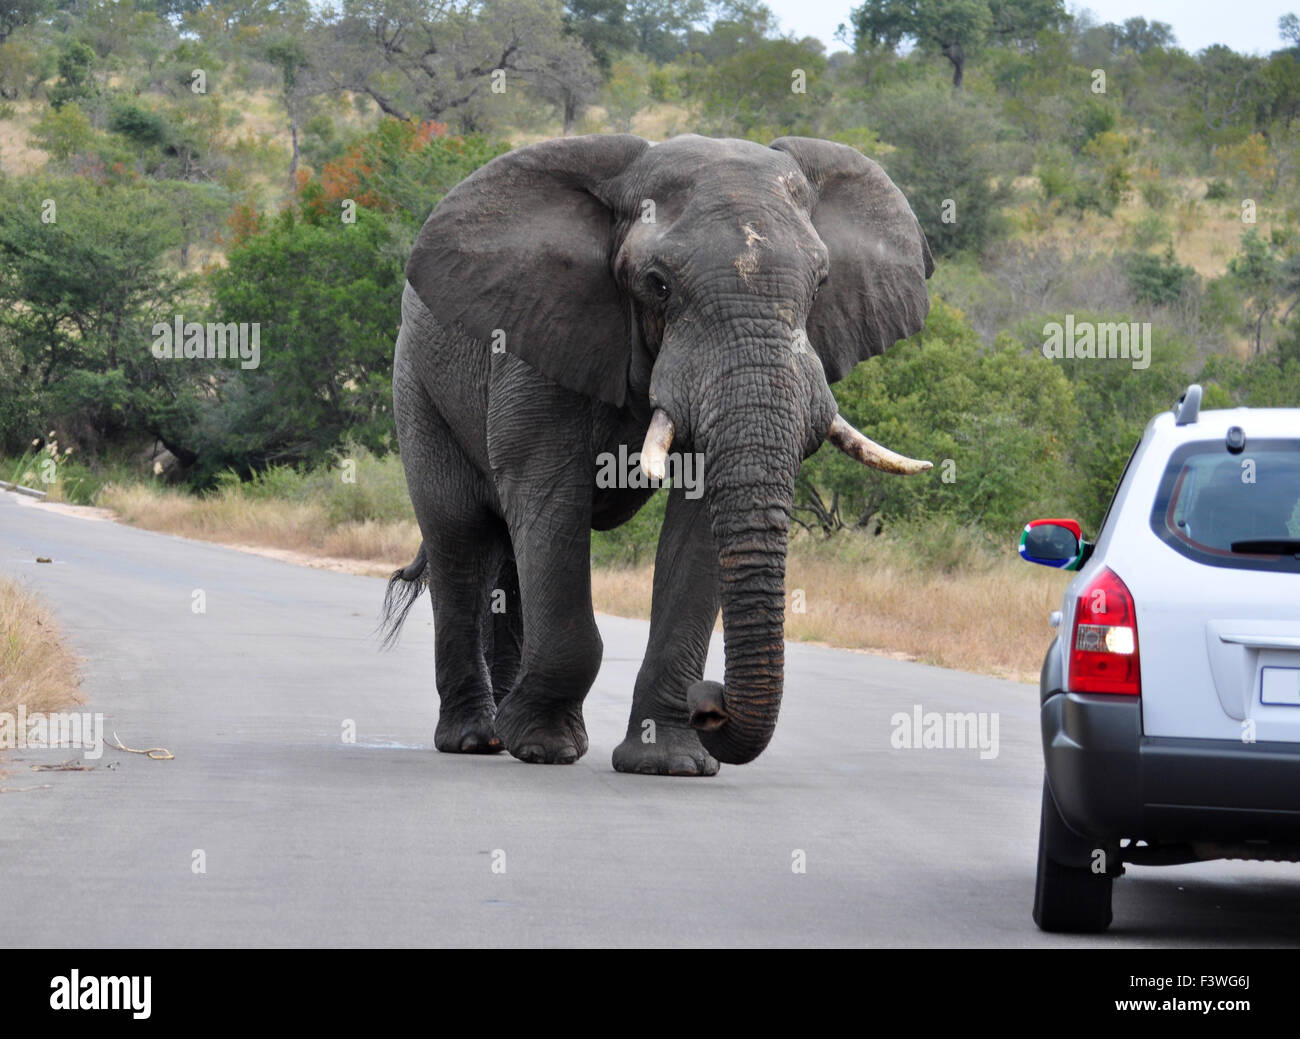 African Elephant - Stock Image